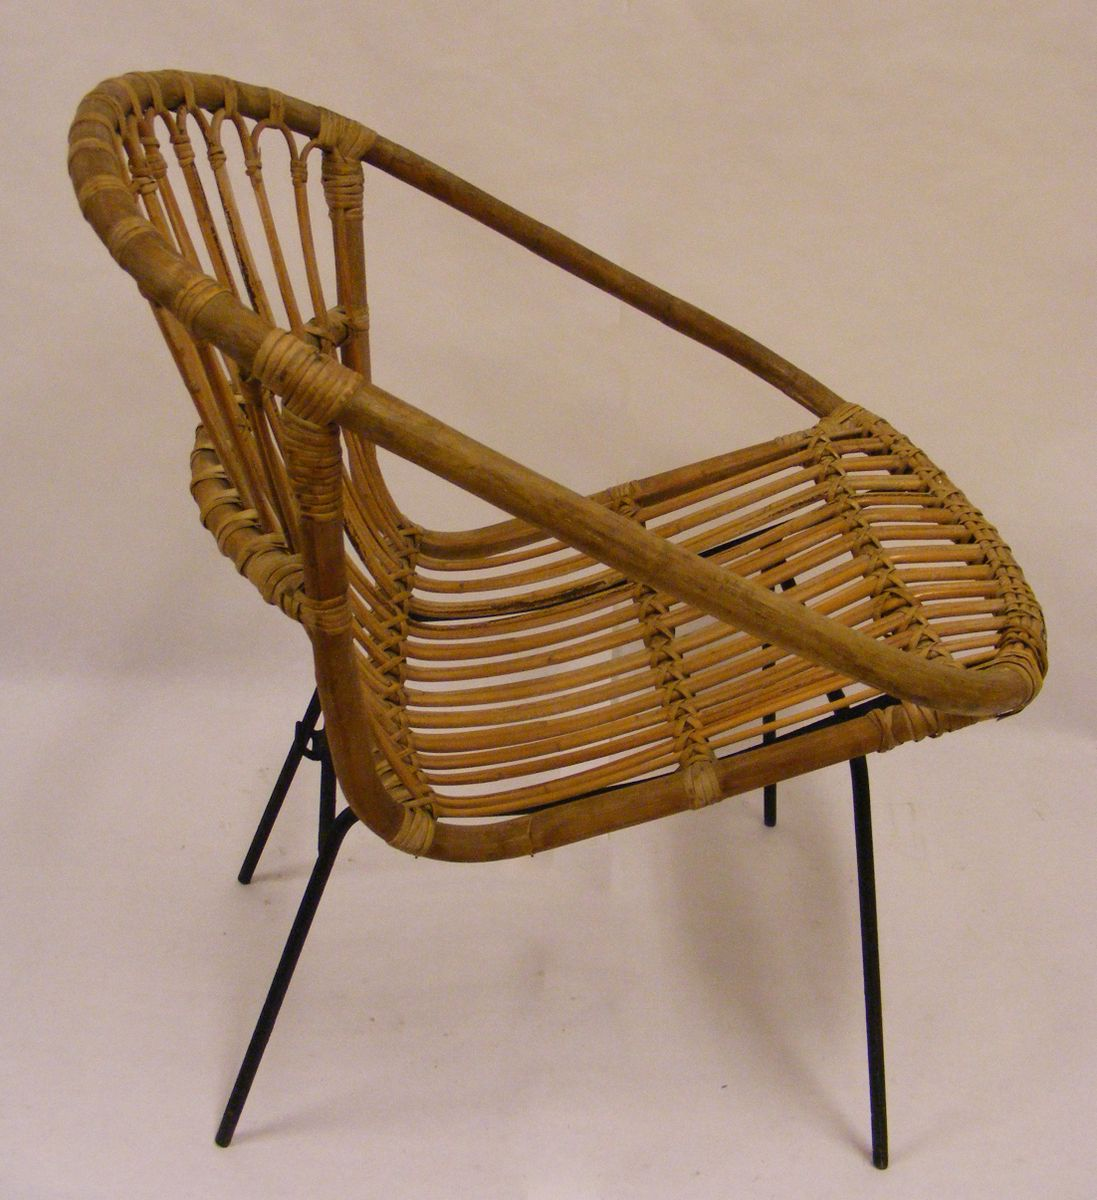 Egg Shaped Wicker Chair Wicker Egg Lounge Chair 1960s For Sale At Pamono